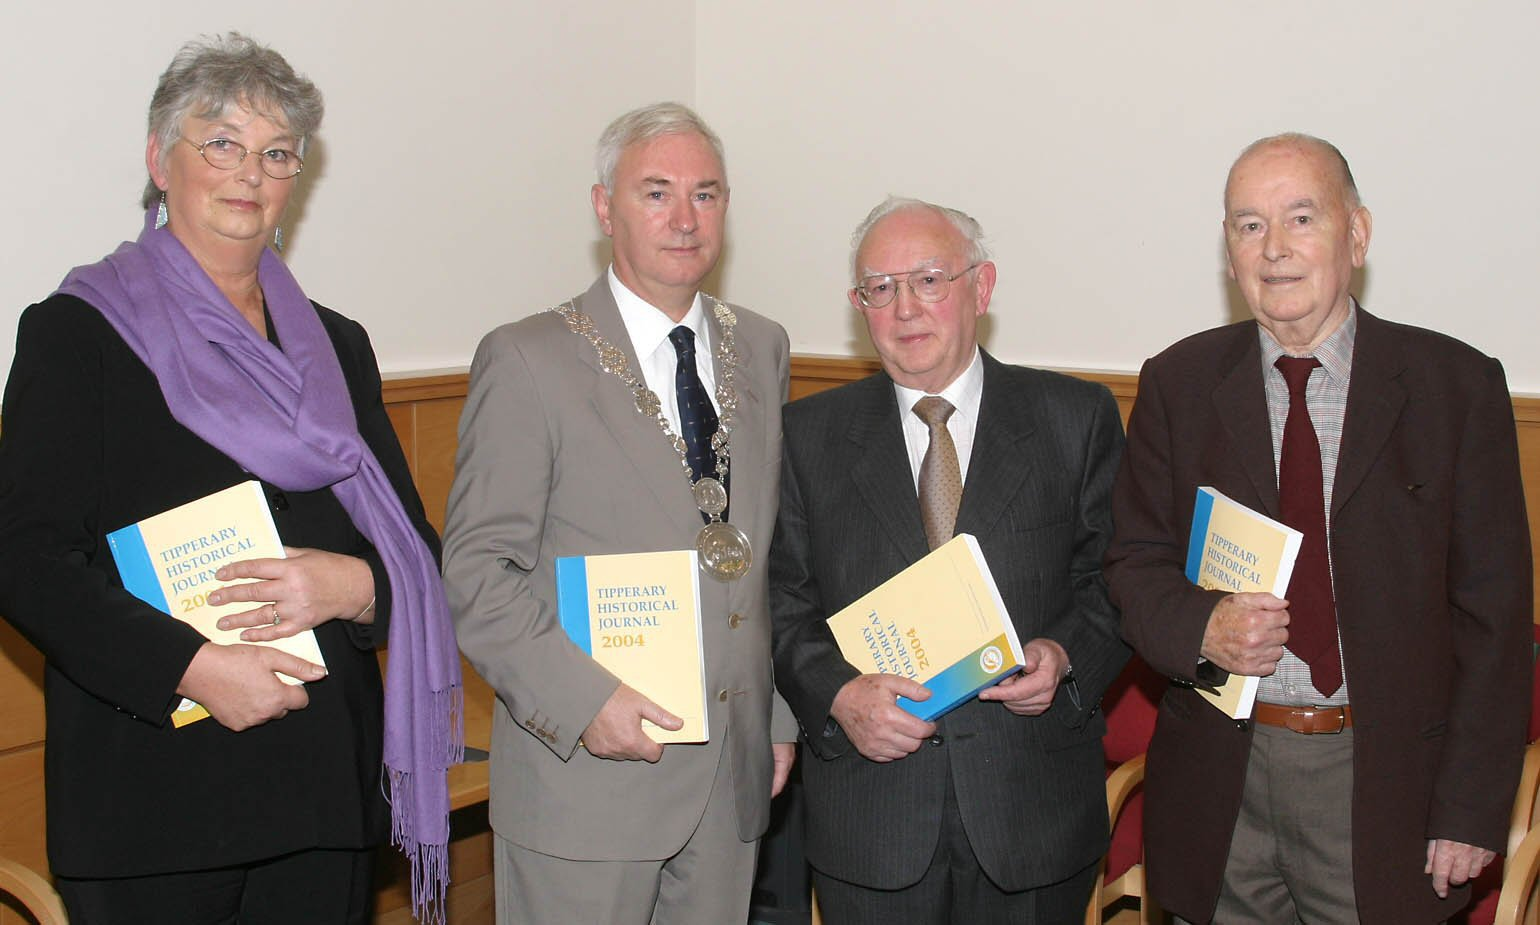 The Tipperary Historical Journal Is Officially Launched In Cashel Town Council By The Mayor Of Cashel In November, 2004. Pictured Above At The Launch Are Dr. Carmel Quinlan [Editor]; Cllr. Tom Woods, Mayor Of Cashel; Liam Ó Duibhir [Chairman]; Marcus Bourke [President].